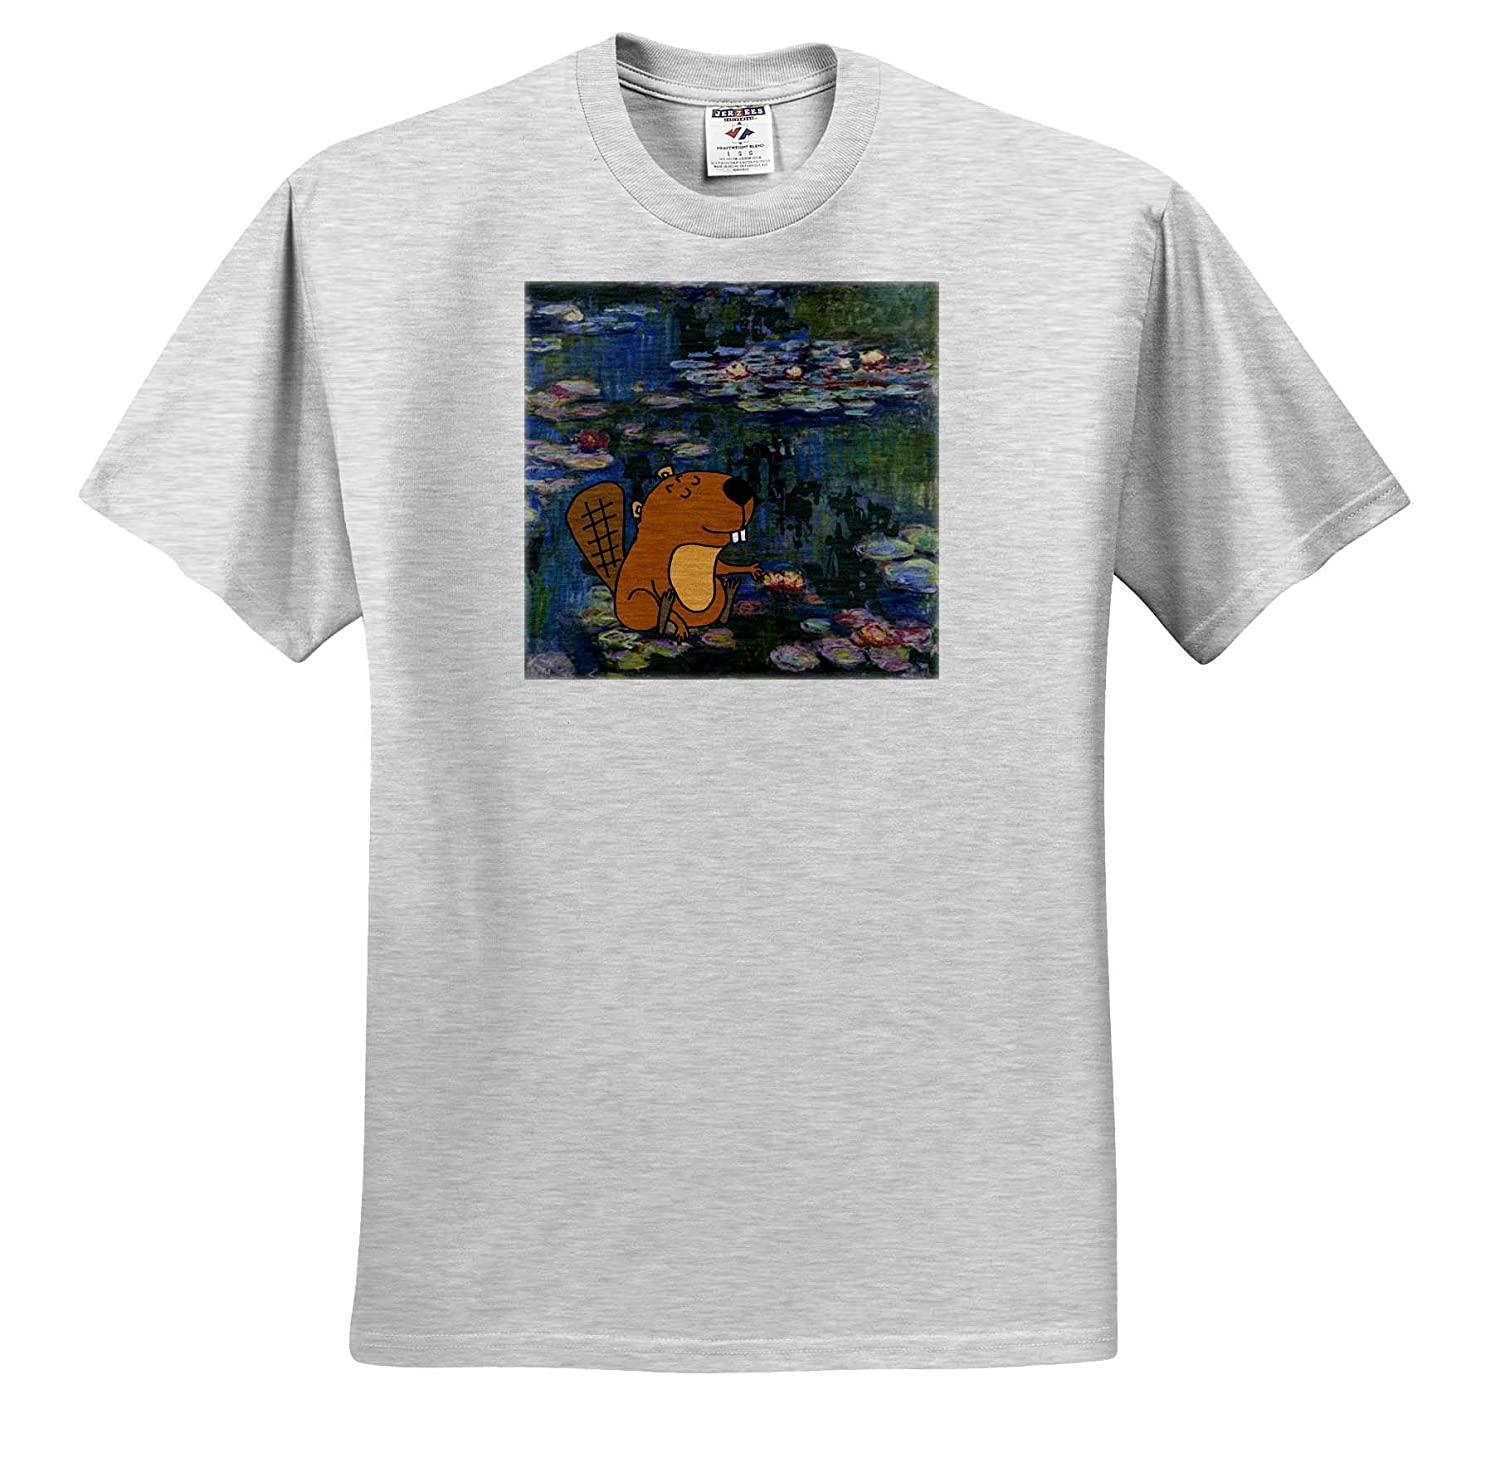 Funny Cute Beaver in Monet Water Lilies Art ts/_317013 3dRose All Smiles Art Funny Adult T-Shirt XL